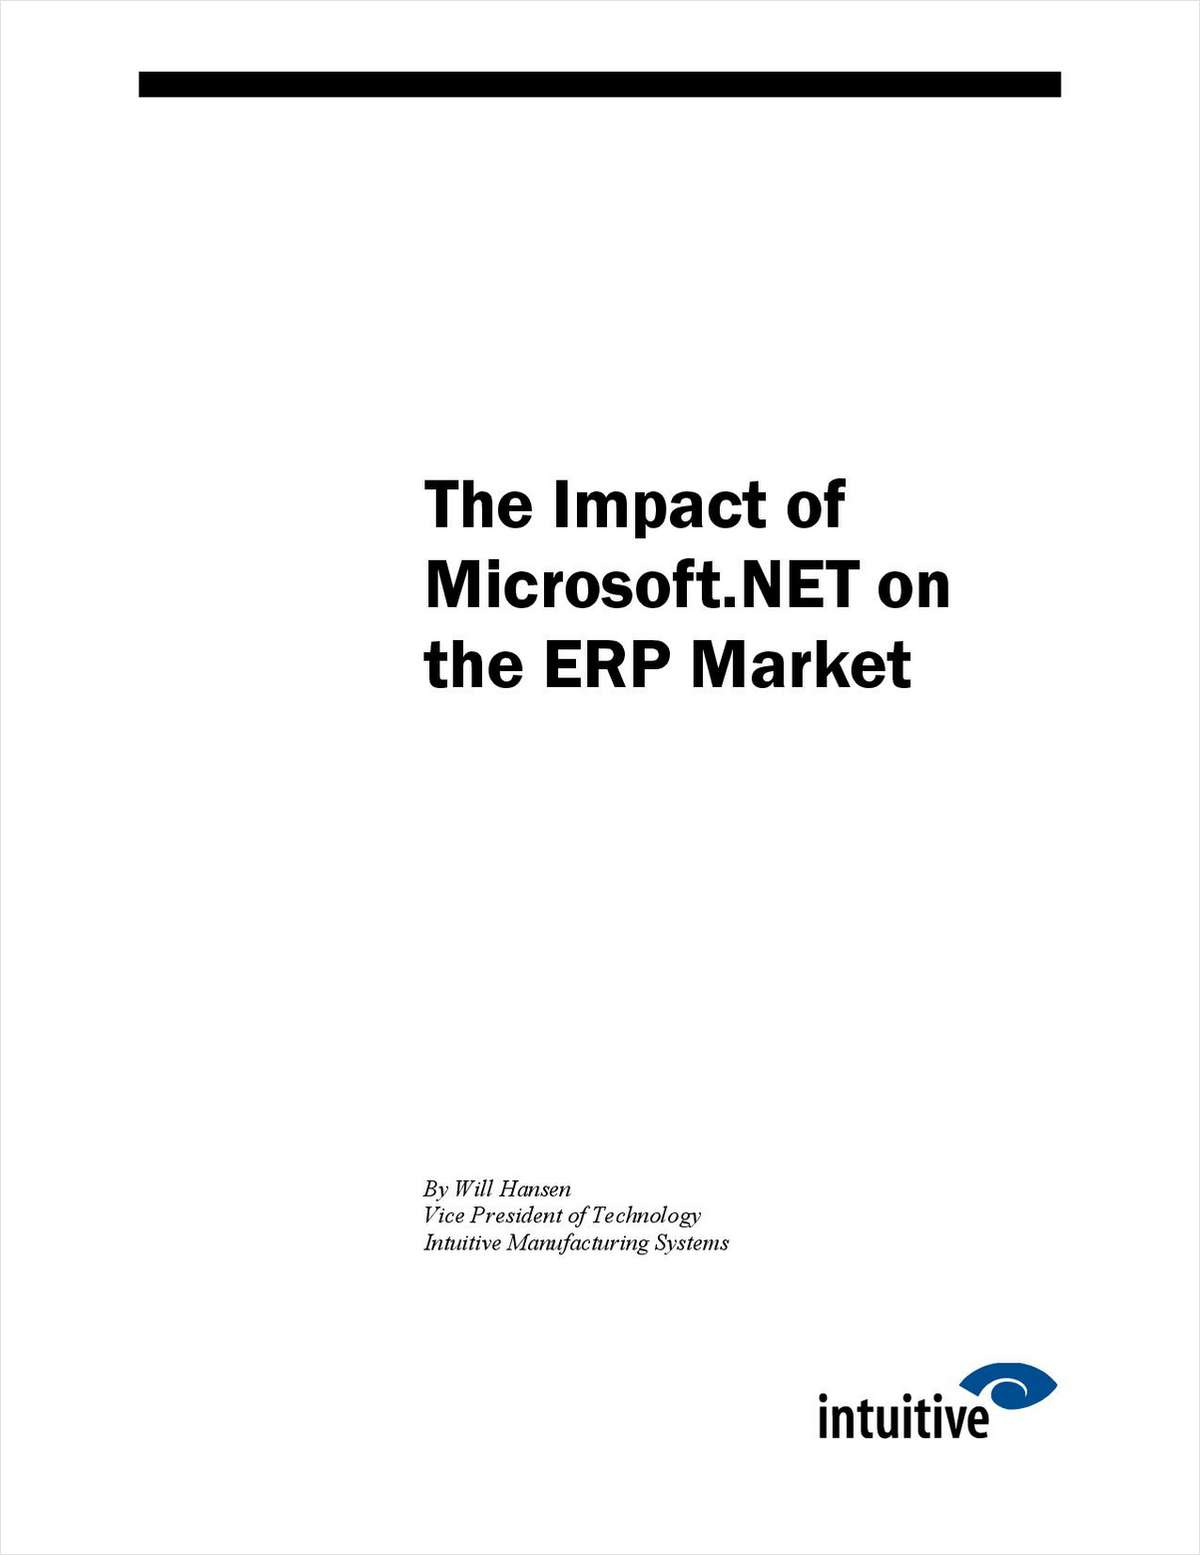 The Impact of Microsoft.NET on the ERP Market